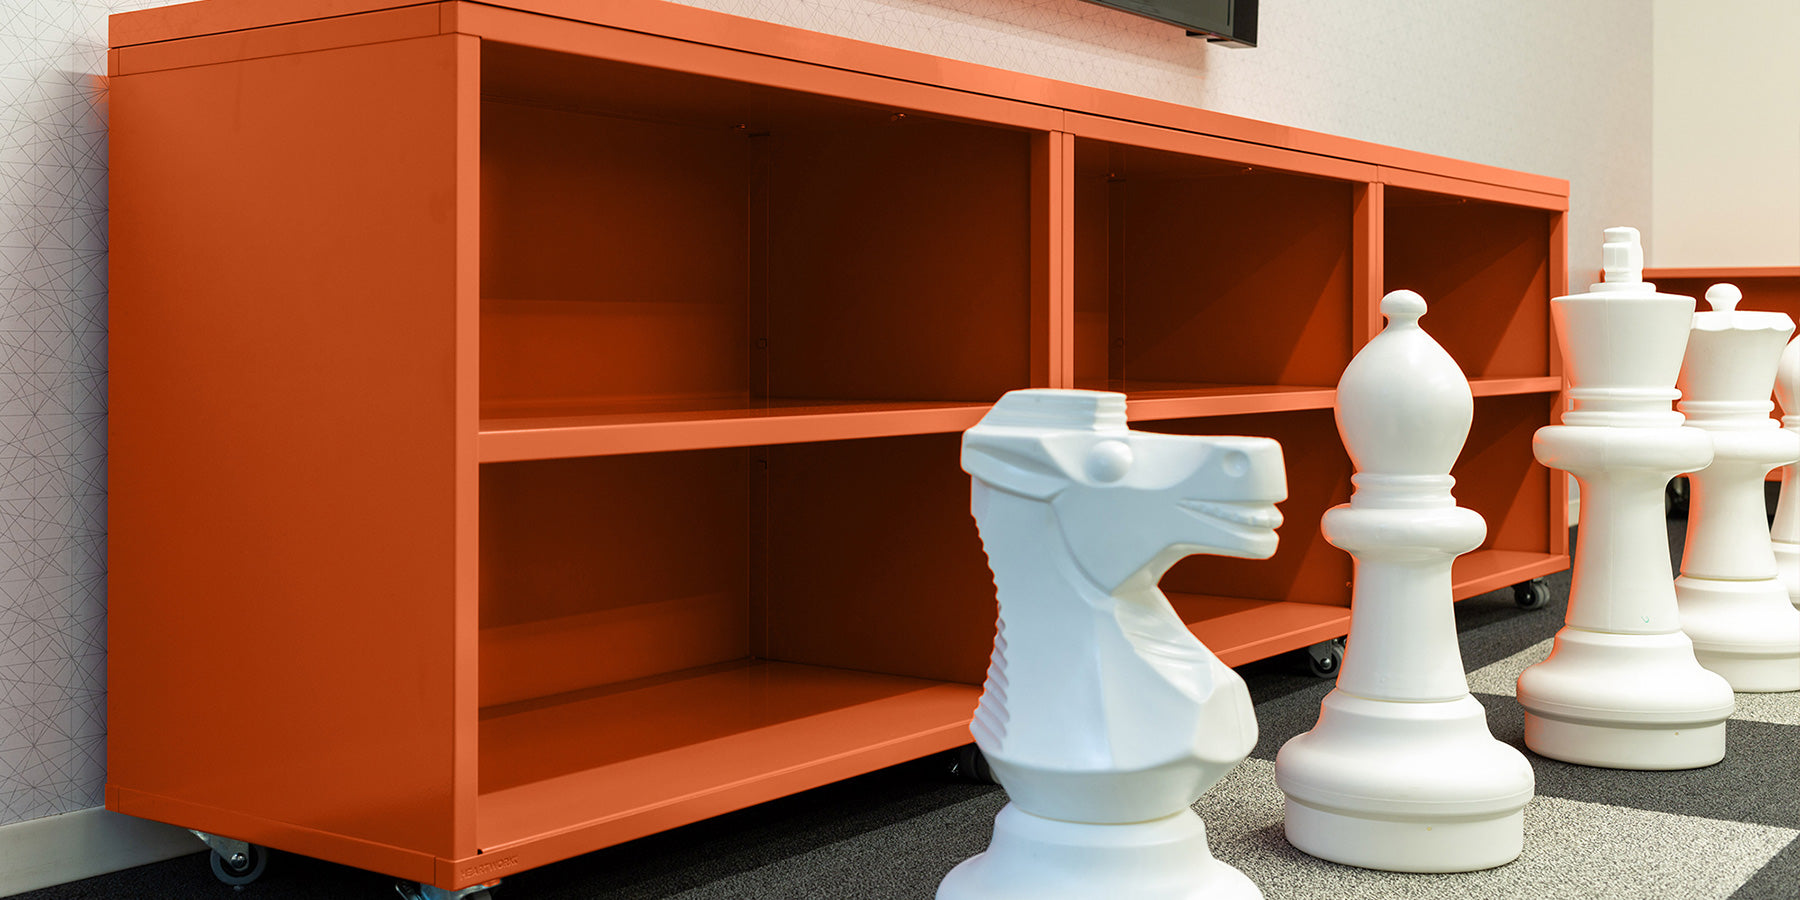 Heartwork Building Block bookcase in warm orange staged with giant white chess pieces